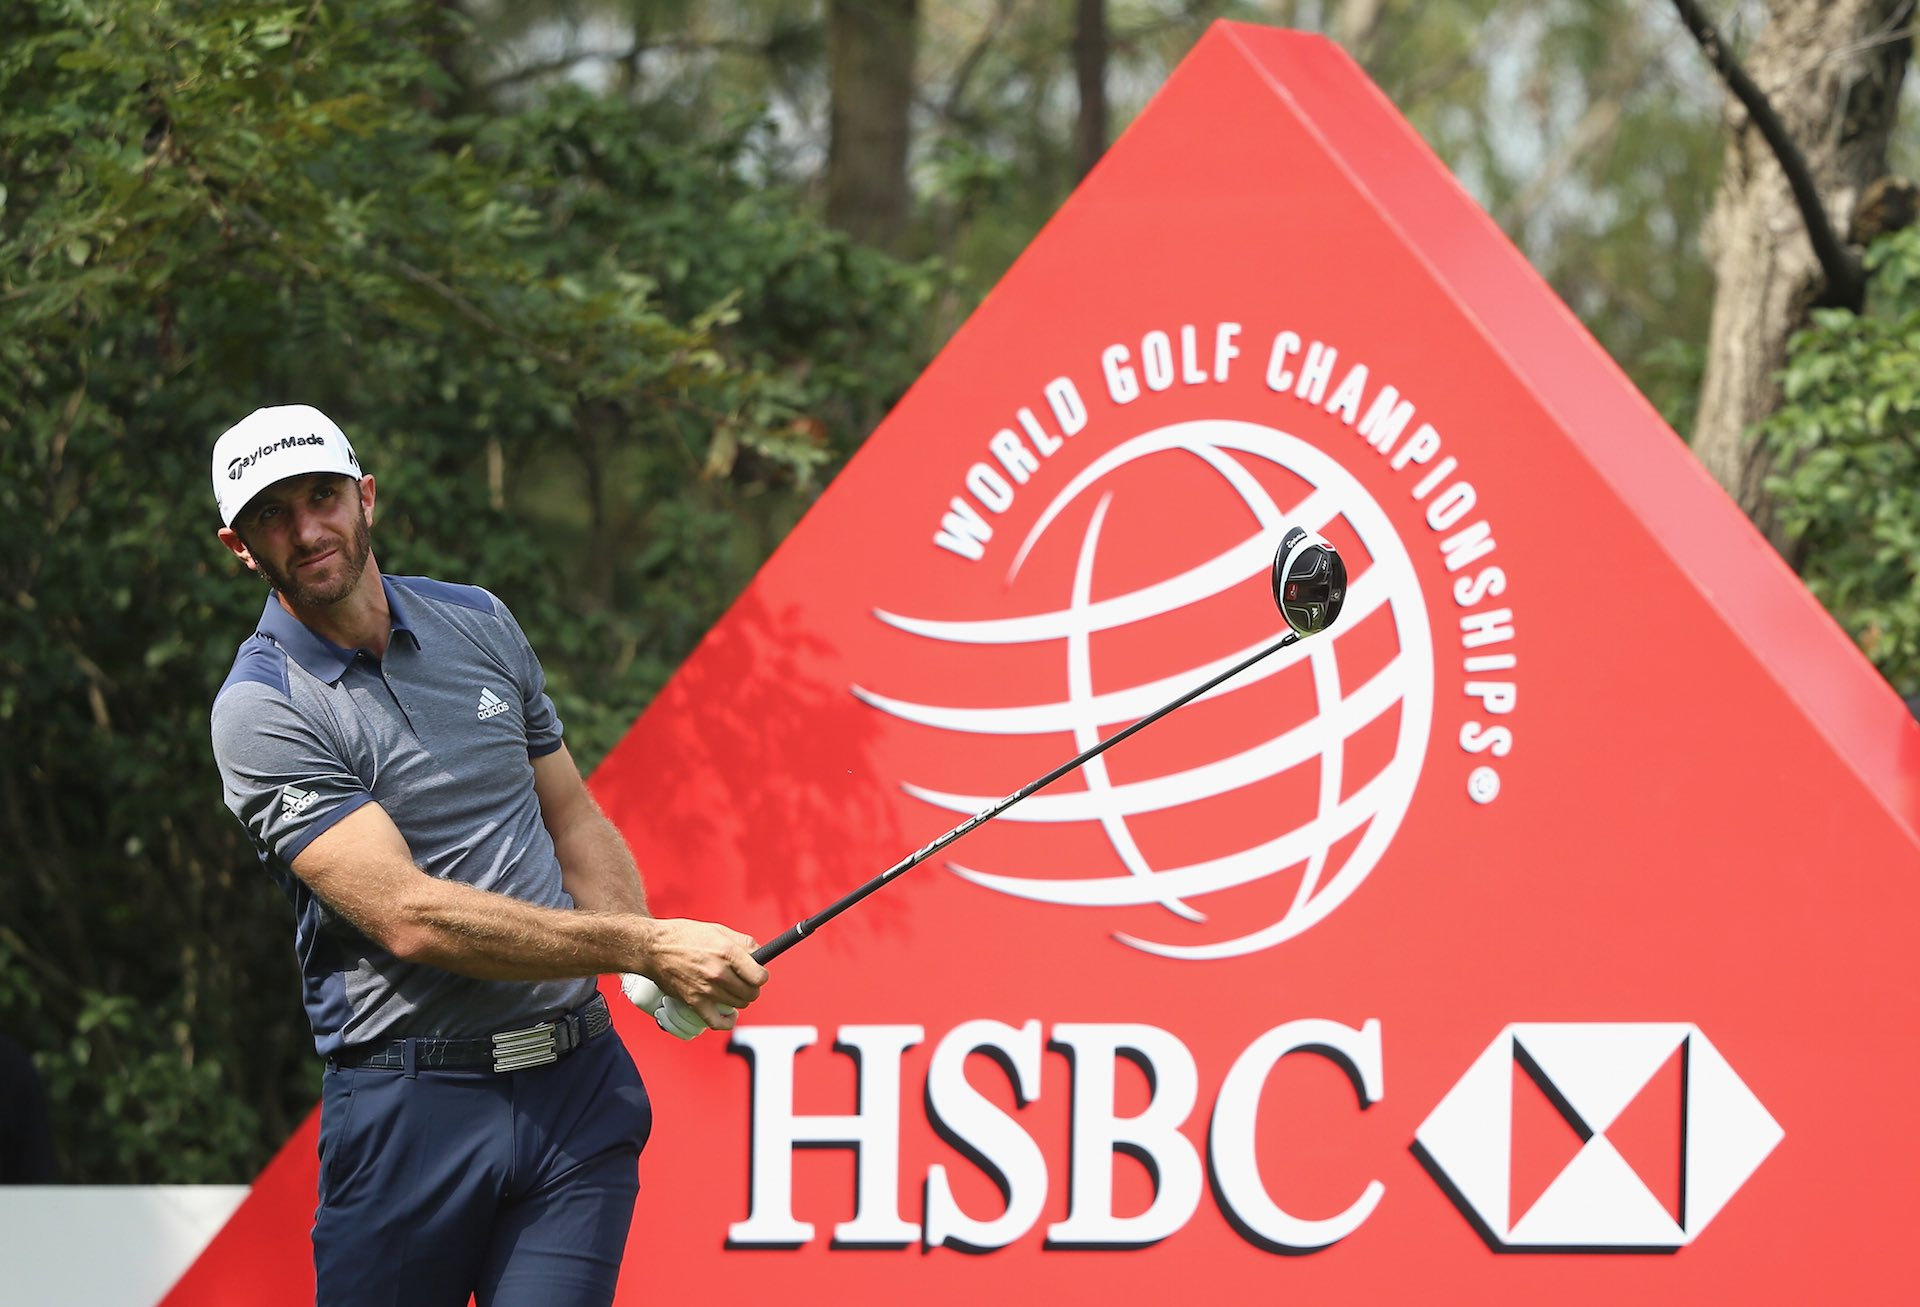 Grace Leads WGC-HSBC Champions